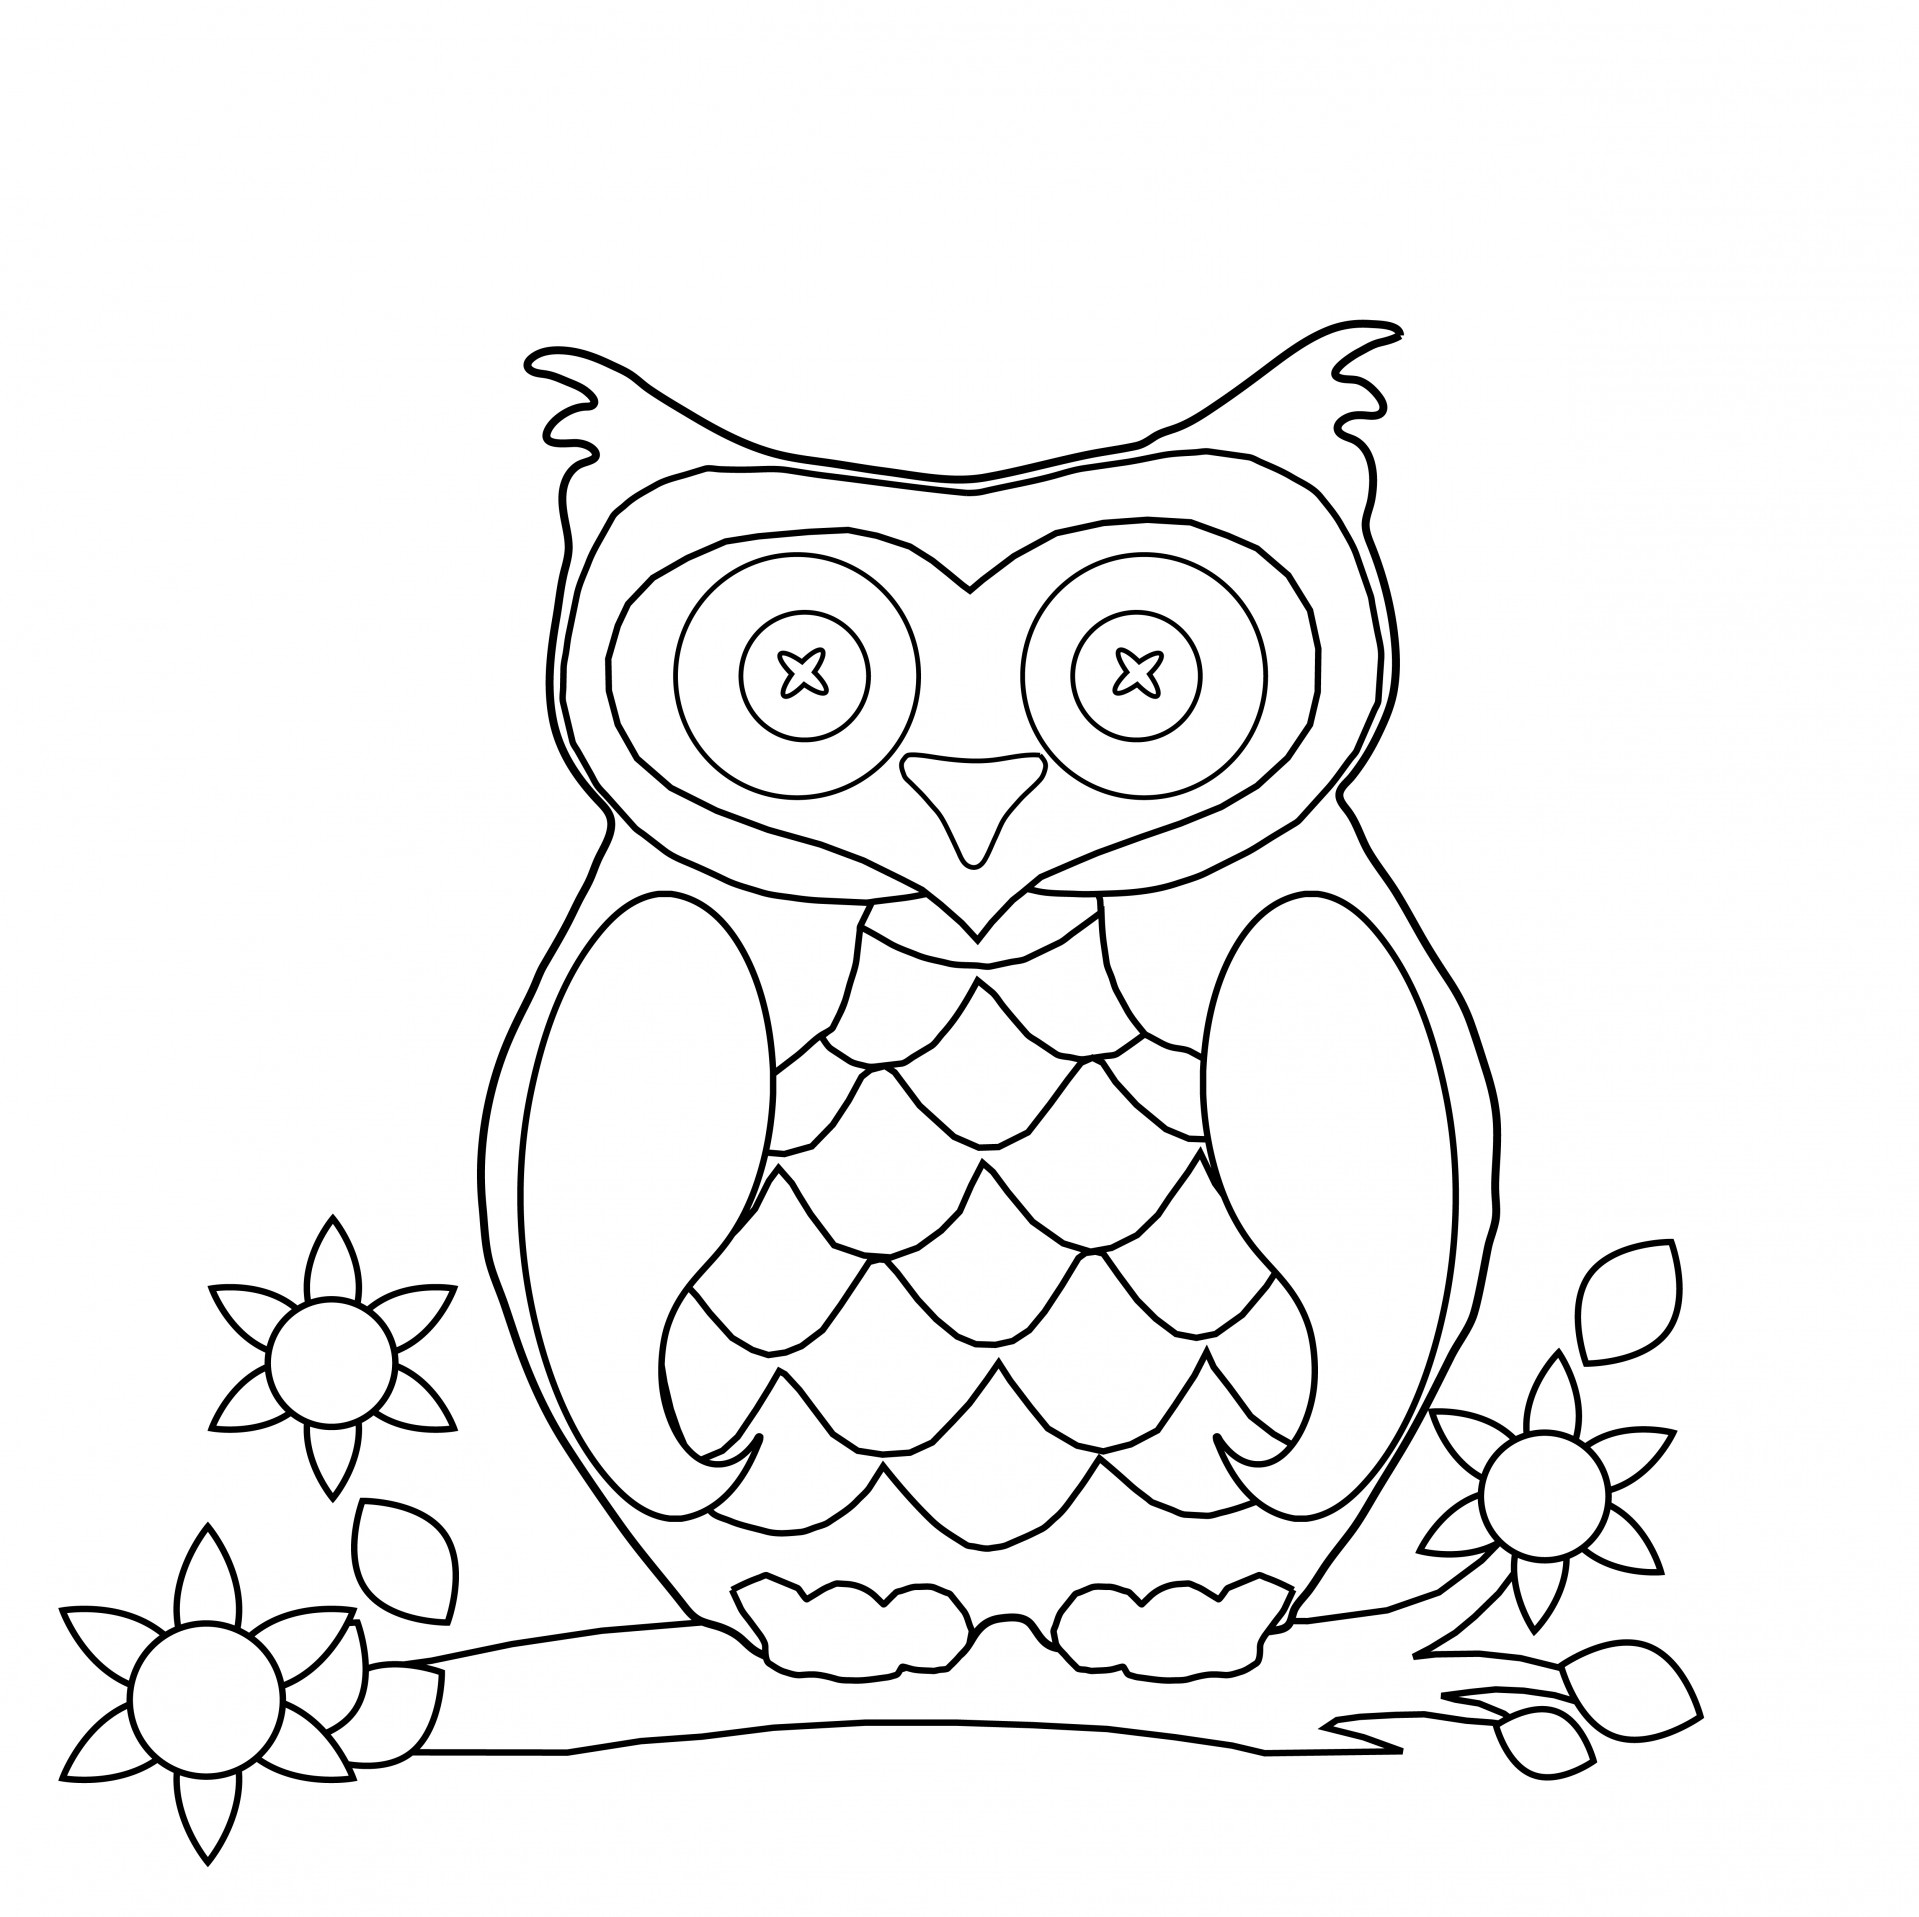 coloring pages printable free lisa frank animals coloring pages download and print for free free coloring pages printable